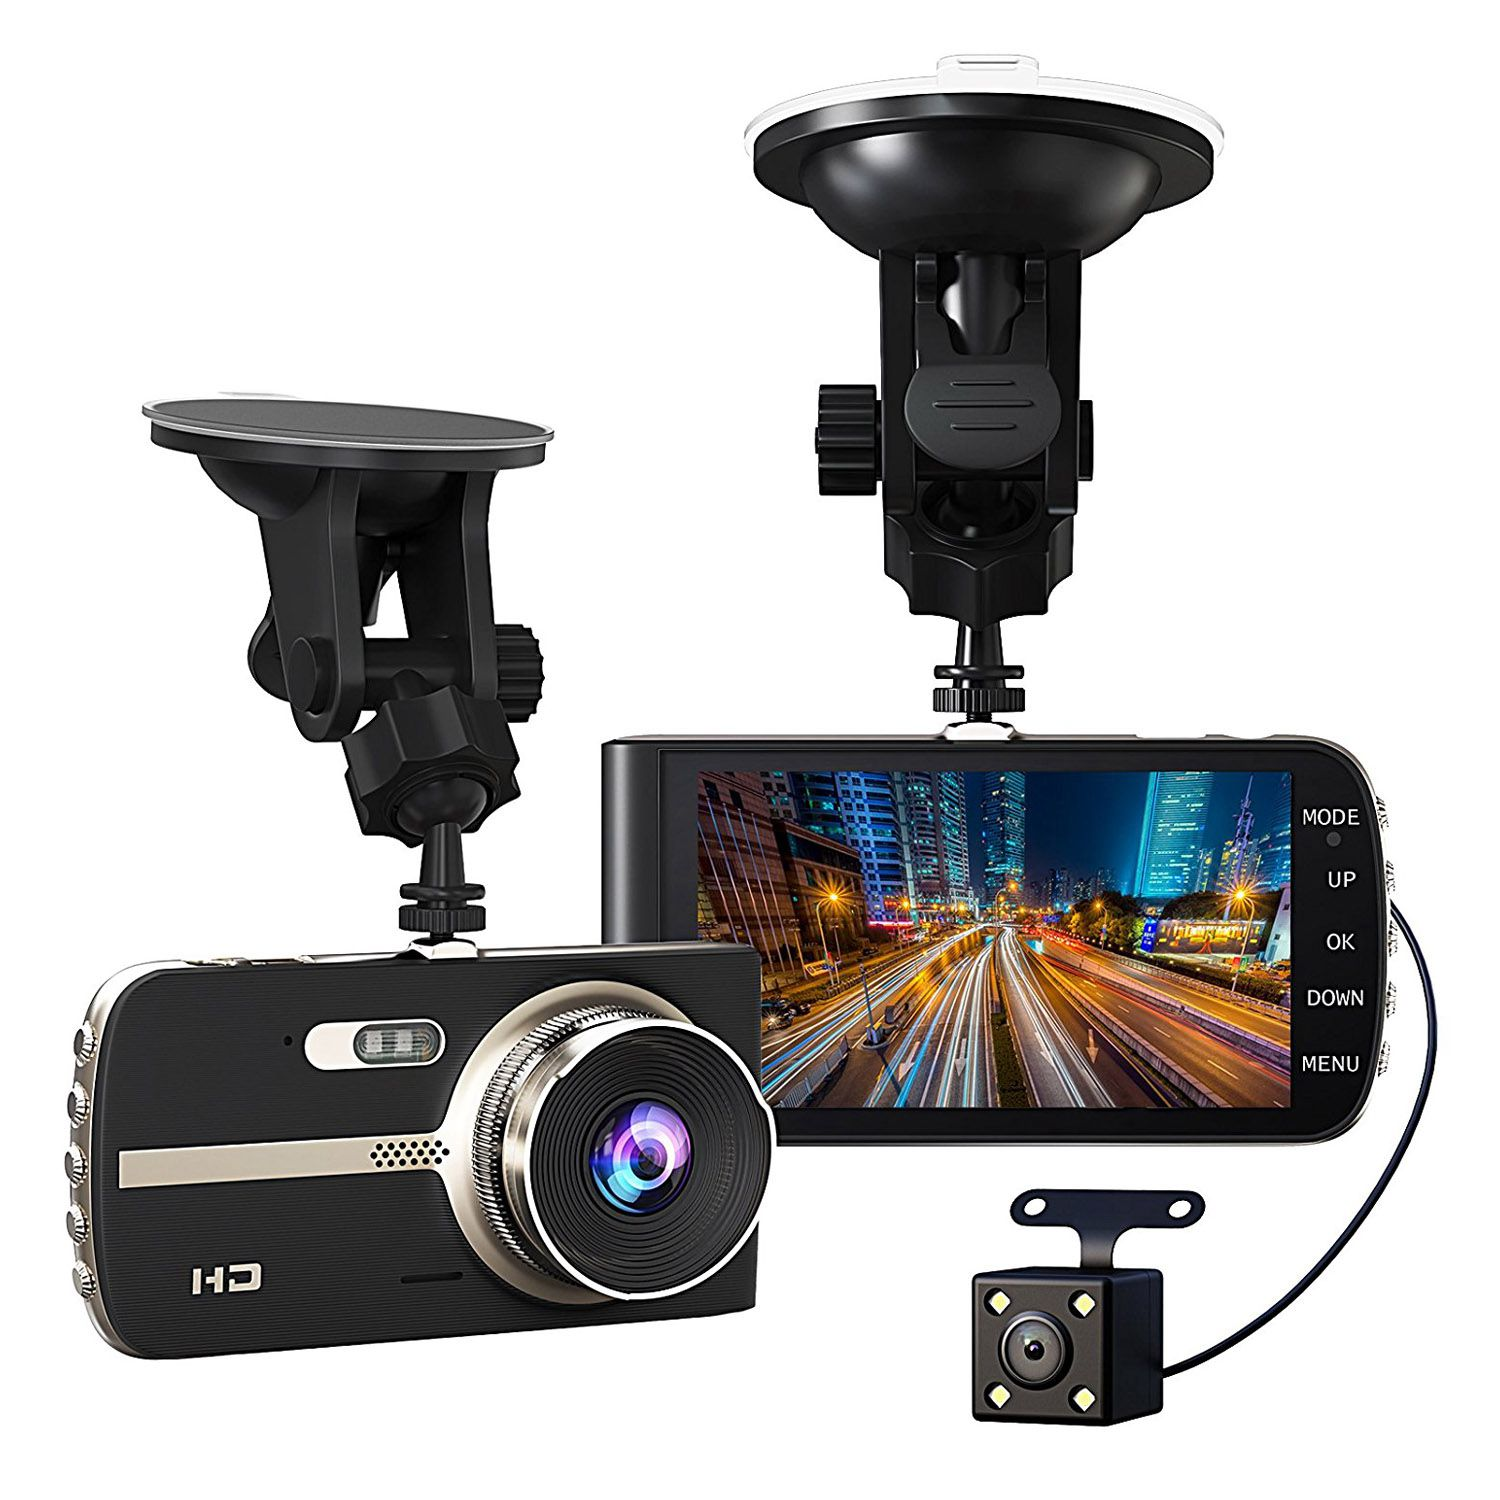 Super HD 1080P Front + VGA Rear 290 Degree Super Wide Angle Car Dash Cam with 4 inch Large HD Screen, G Sensor, Loop Recording